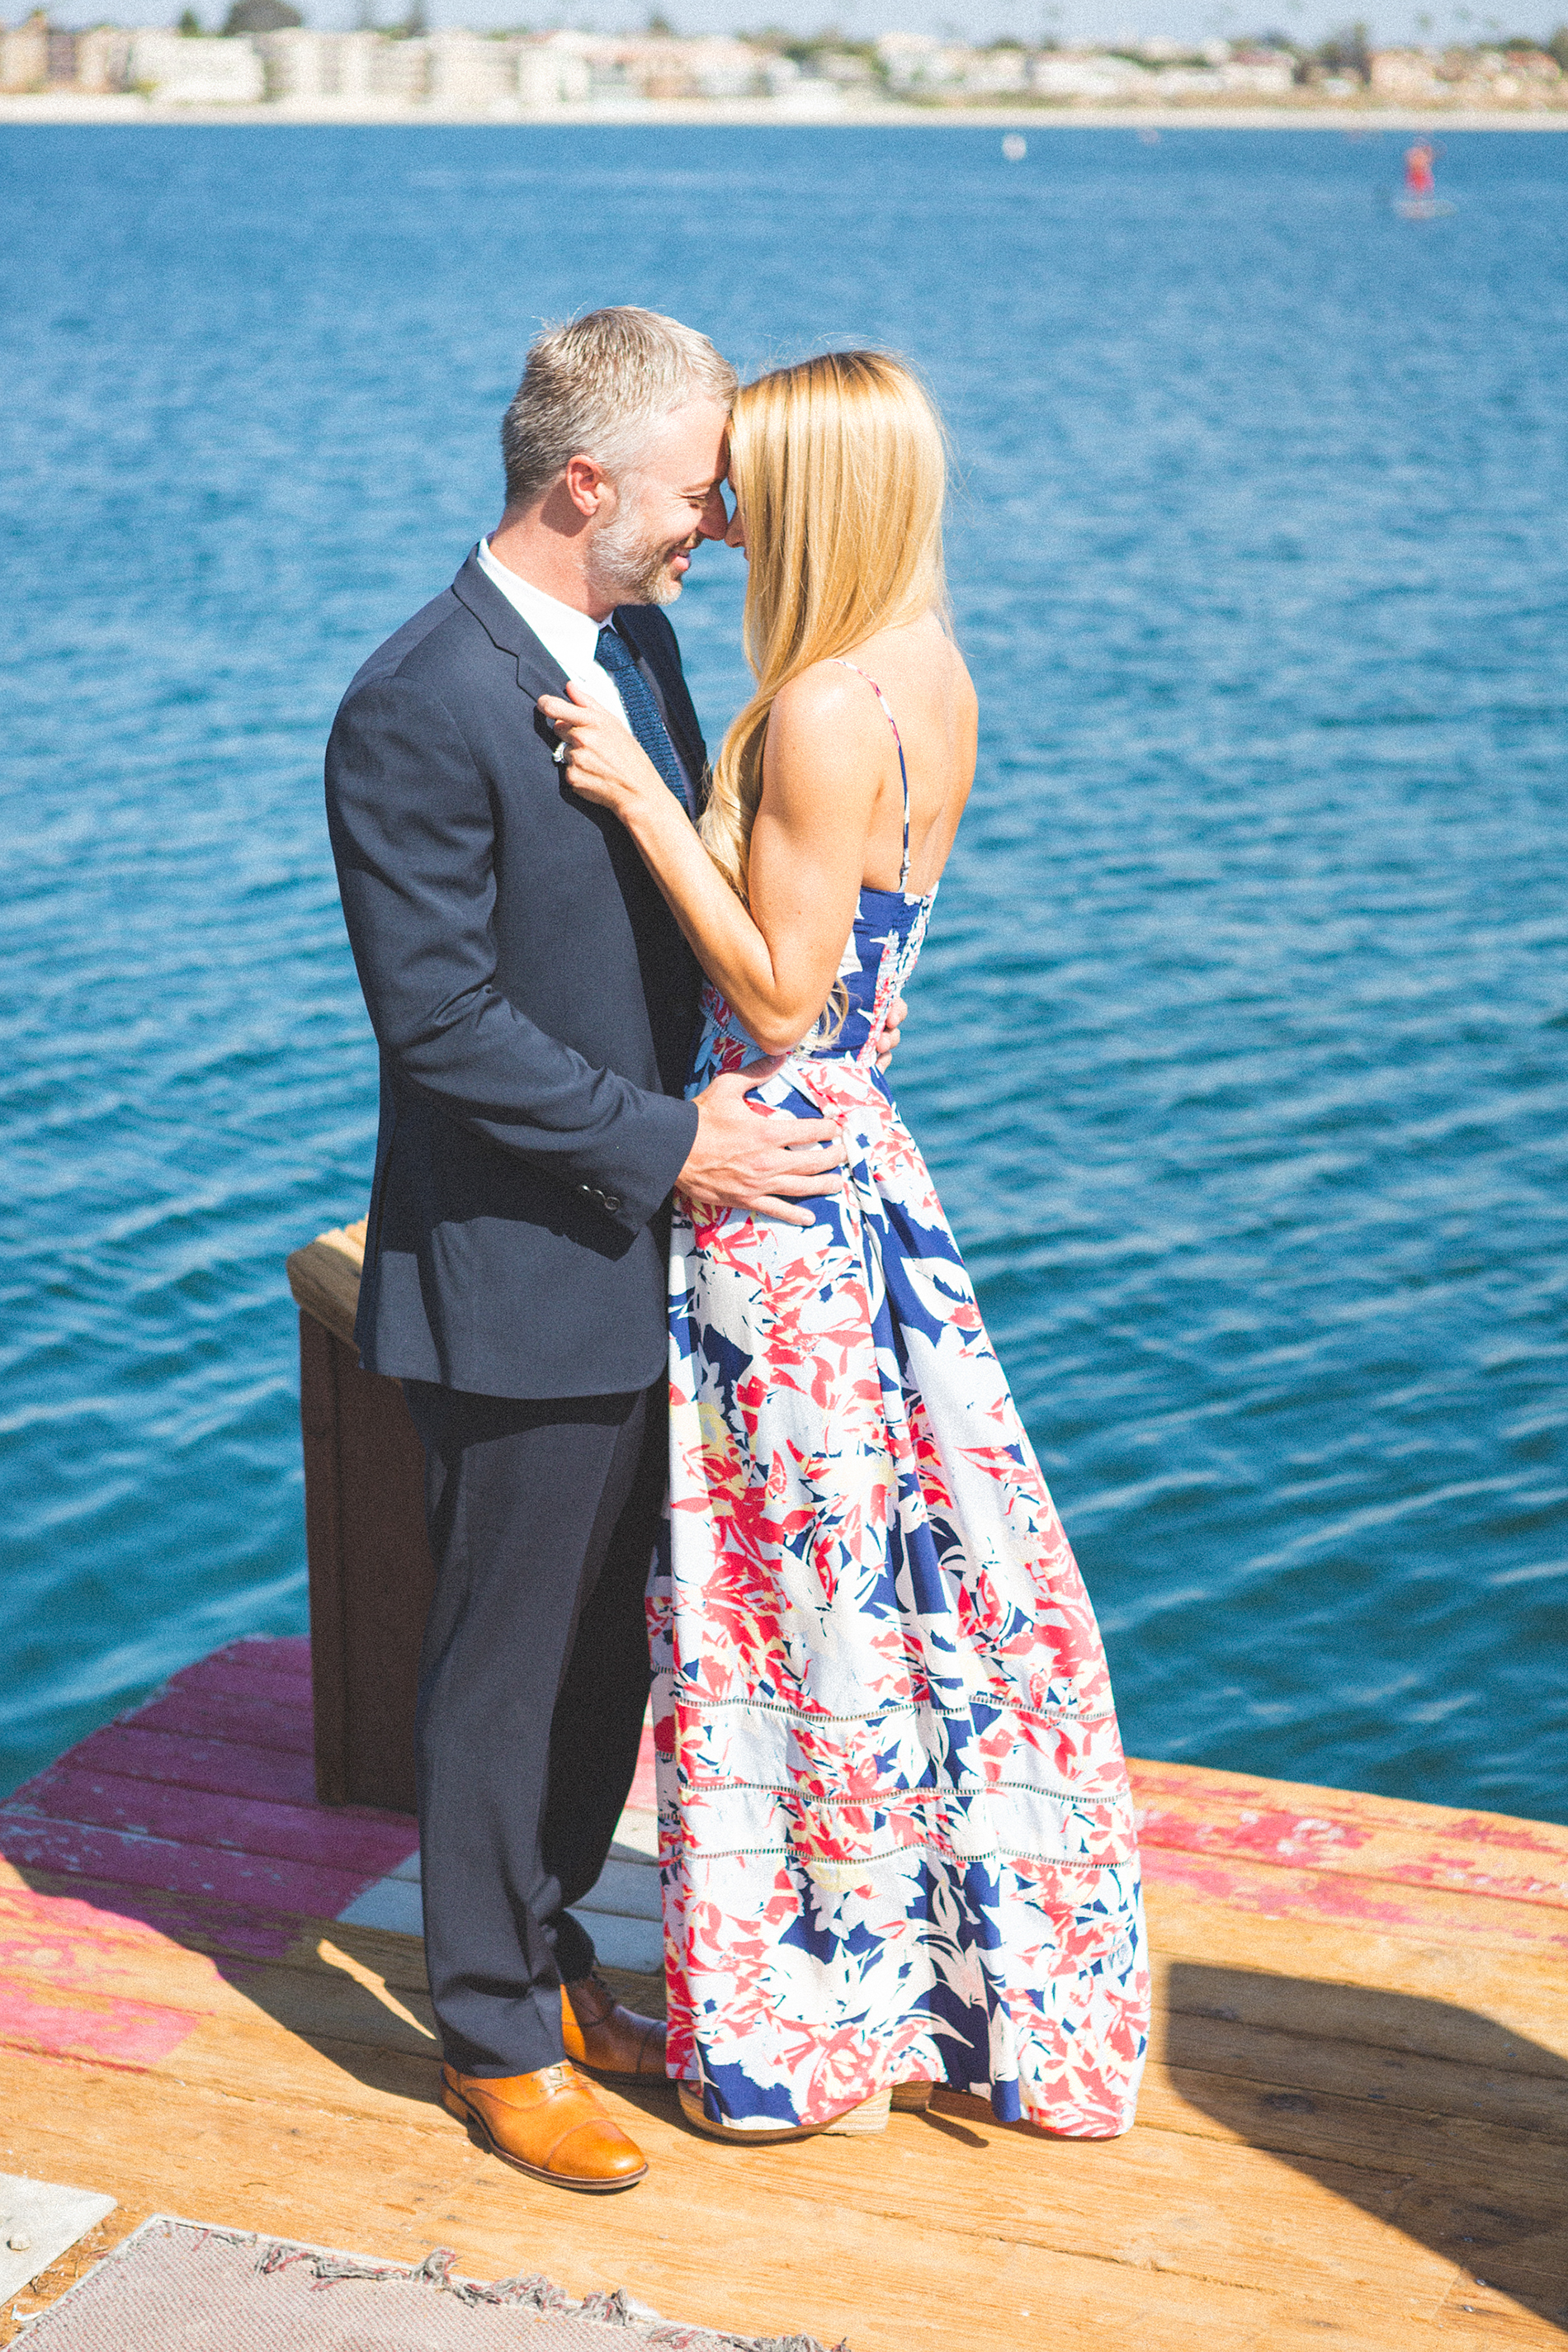 San Diego Photographer Christine Dammann Photography Couples 4